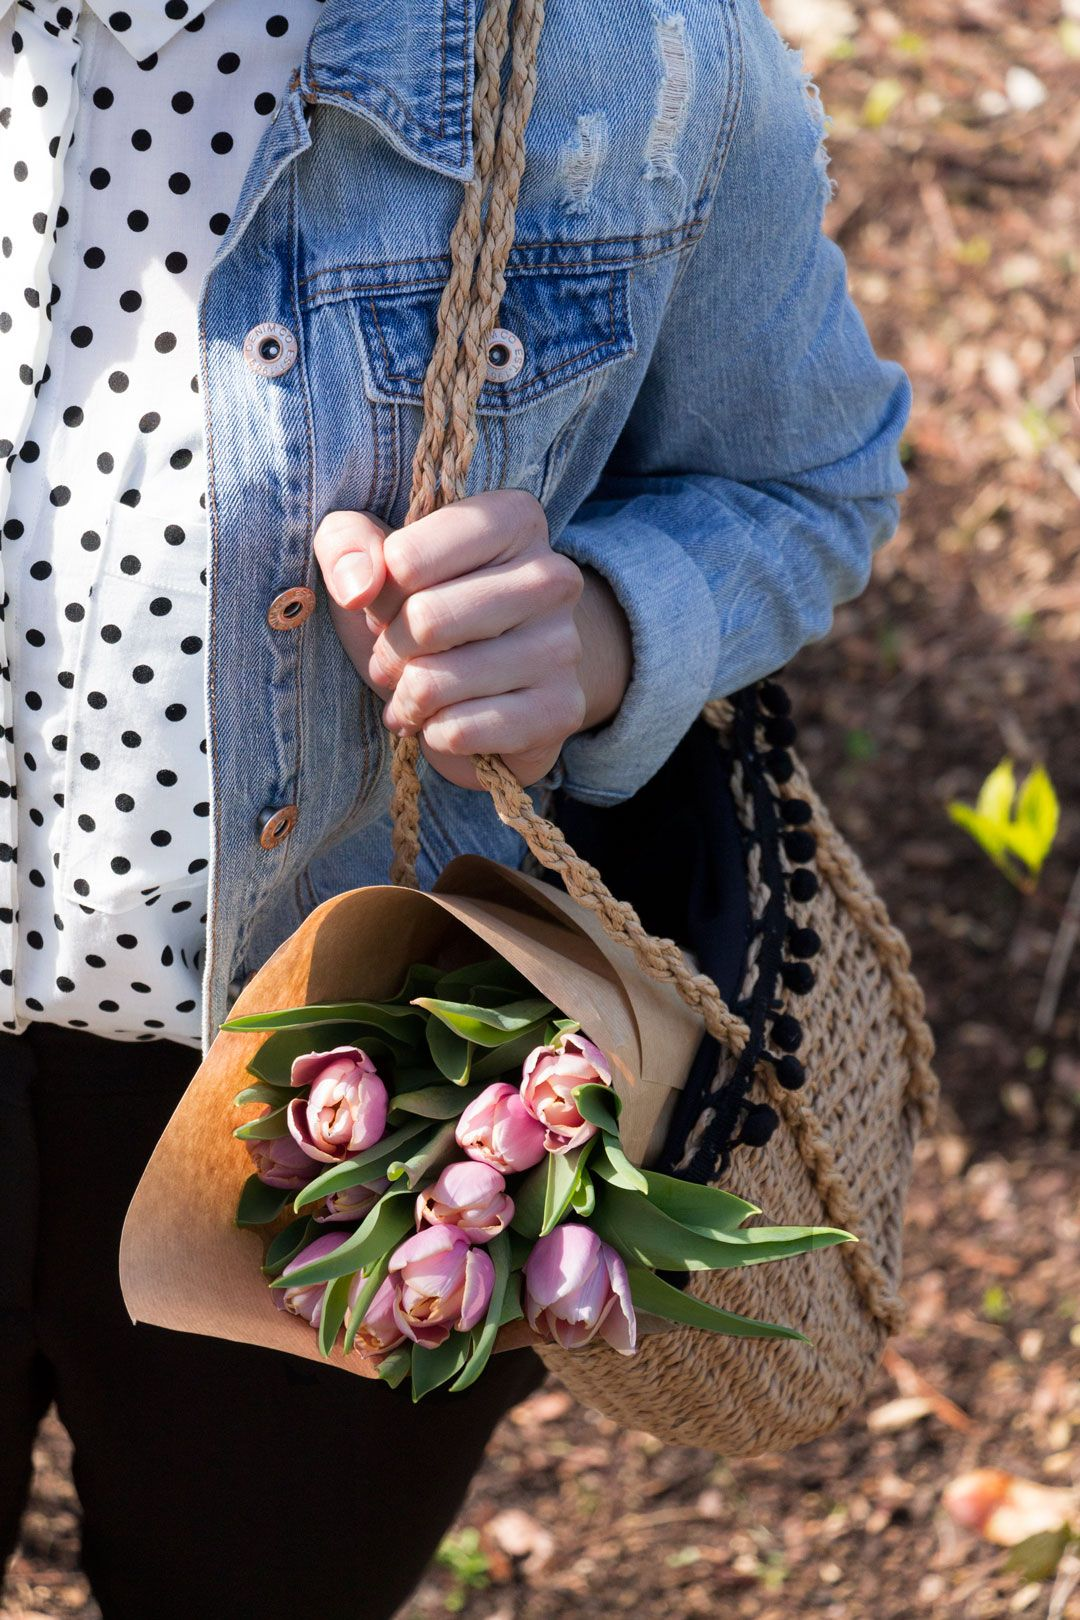 She talks Glam | Detail: denim jacket & pink tulips | Polka dots shirt, pleated pants and light denim jacket | Blue heels and wicker ZARA bag | Cambridge Fashion